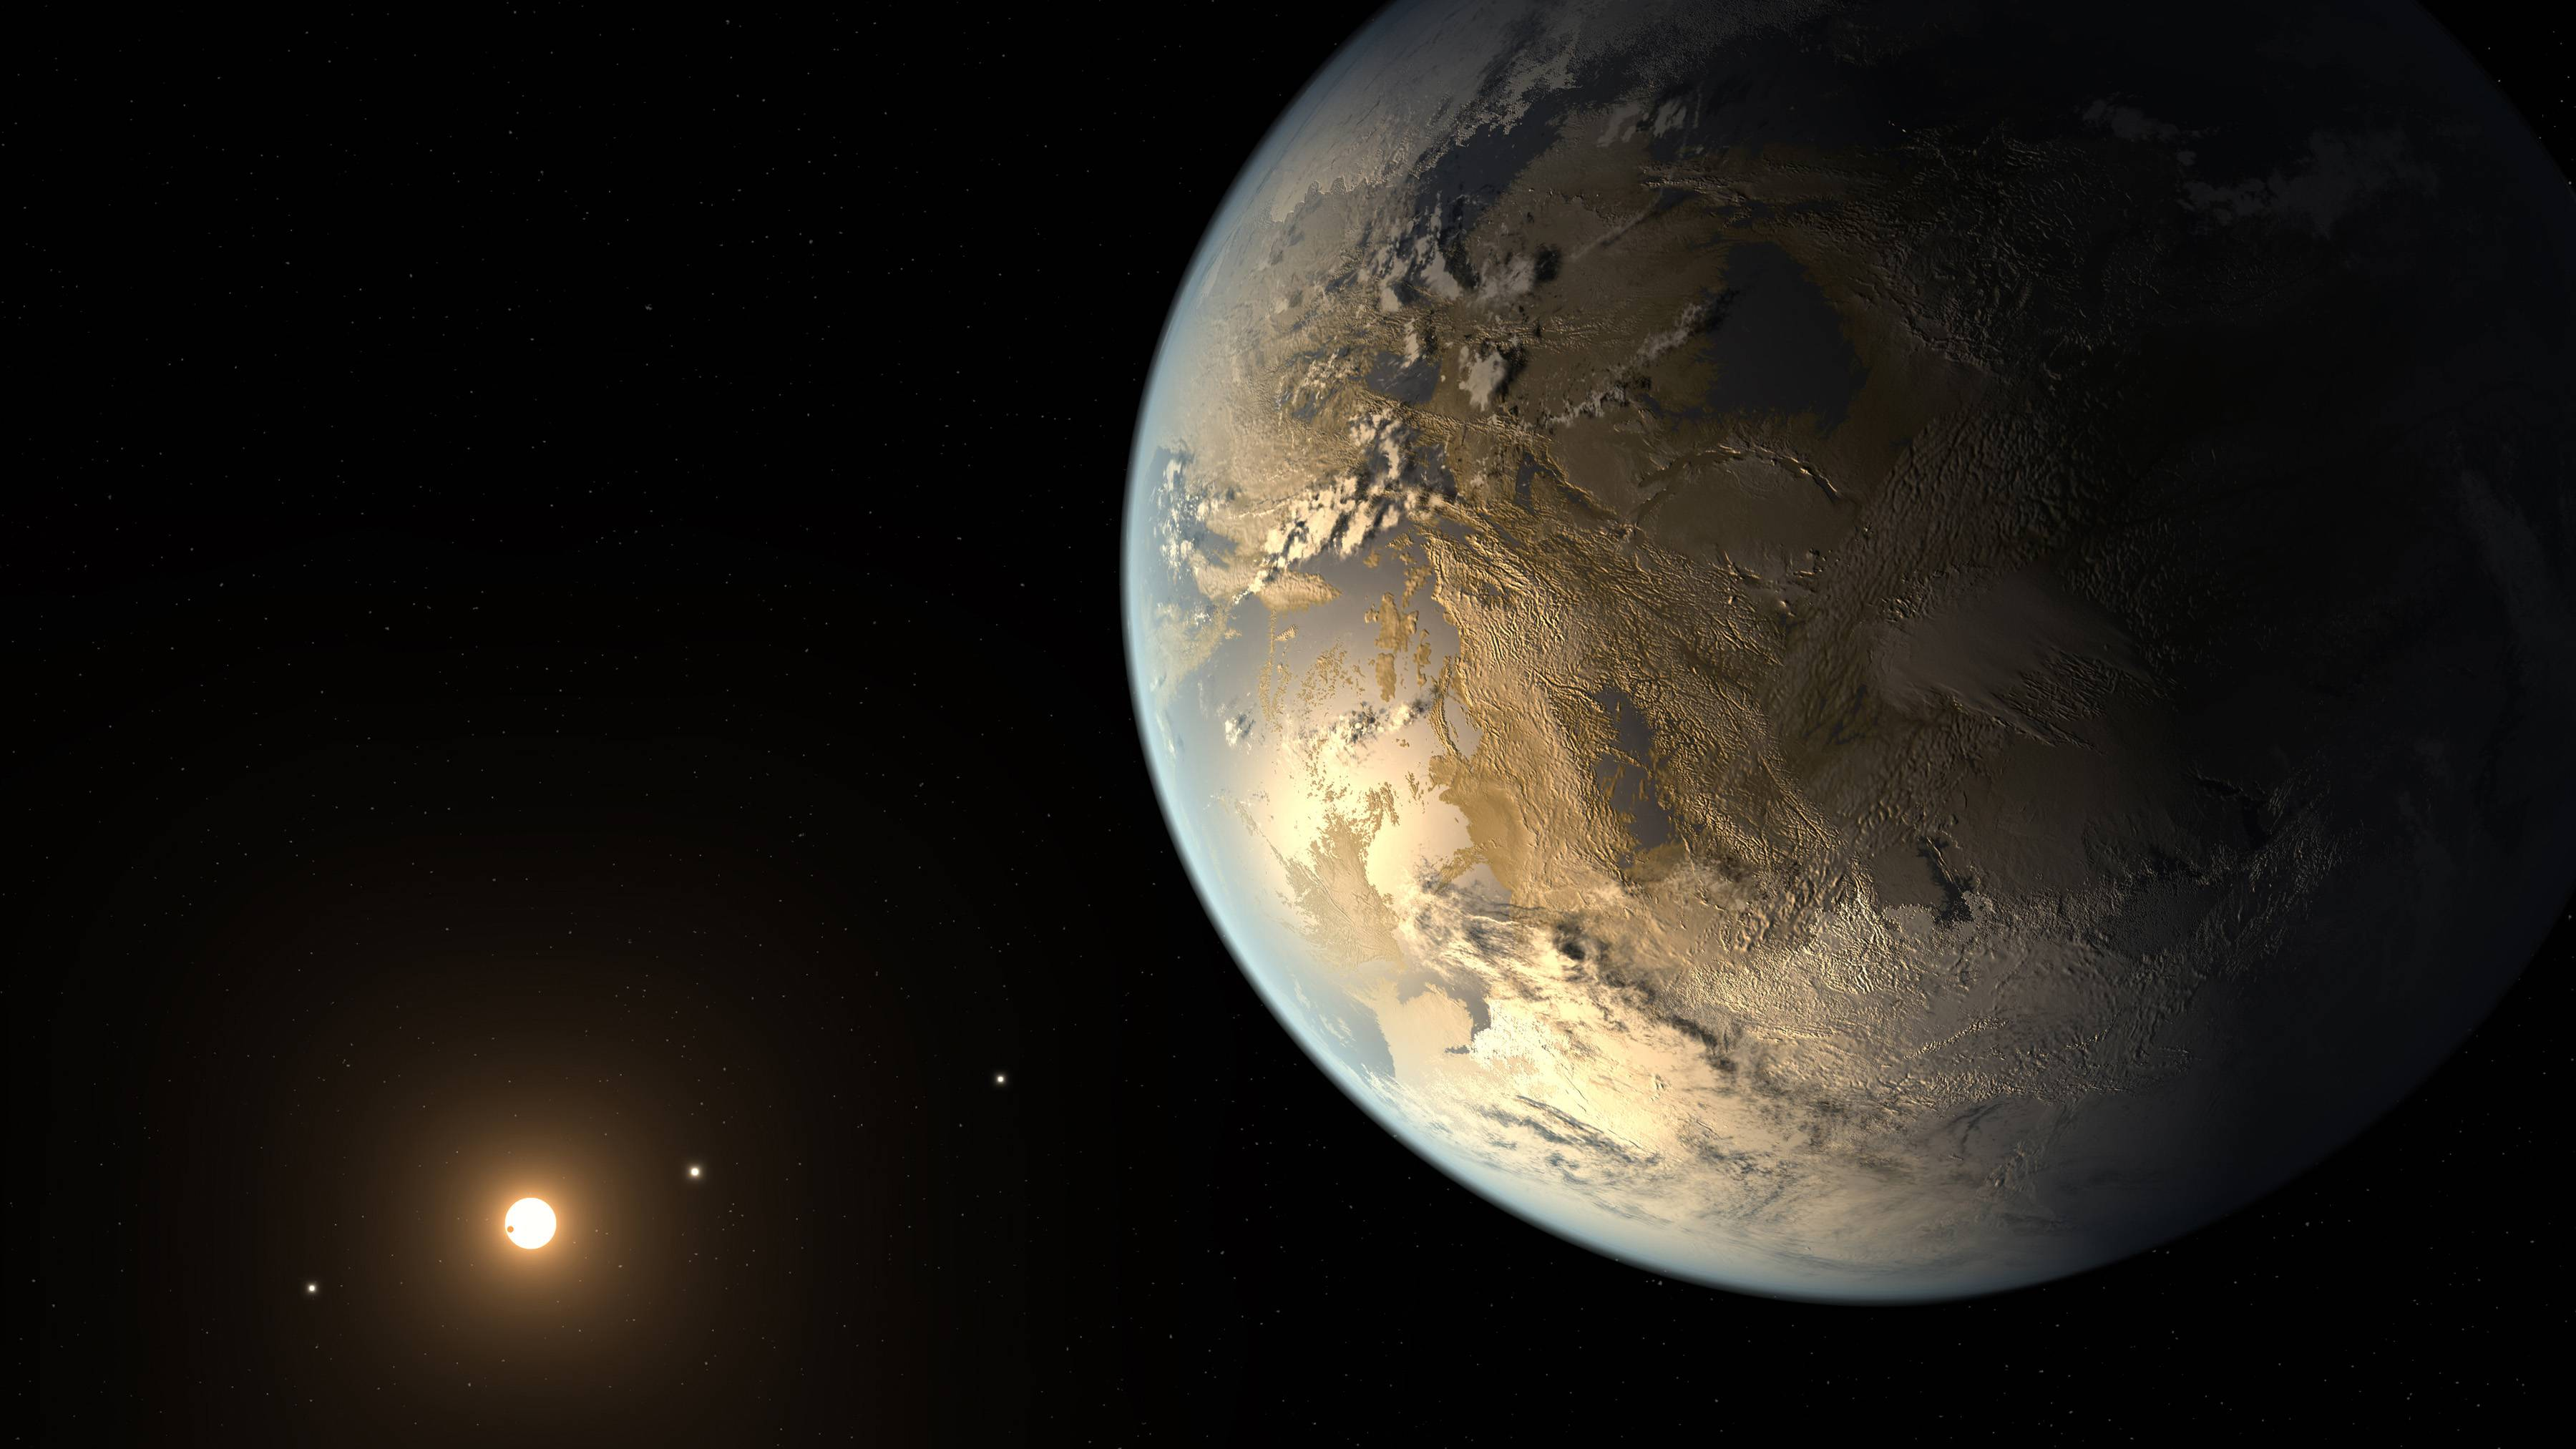 This artist's rendering provided by NASA shows an Earth-sized planet dubbed Kepler-186f orbiting a star 500 light-years from Earth. Astronomers say the planet may hold water on its surface and is the best candidate yet of a habitable planet in the ongoing search for an Earth twin.